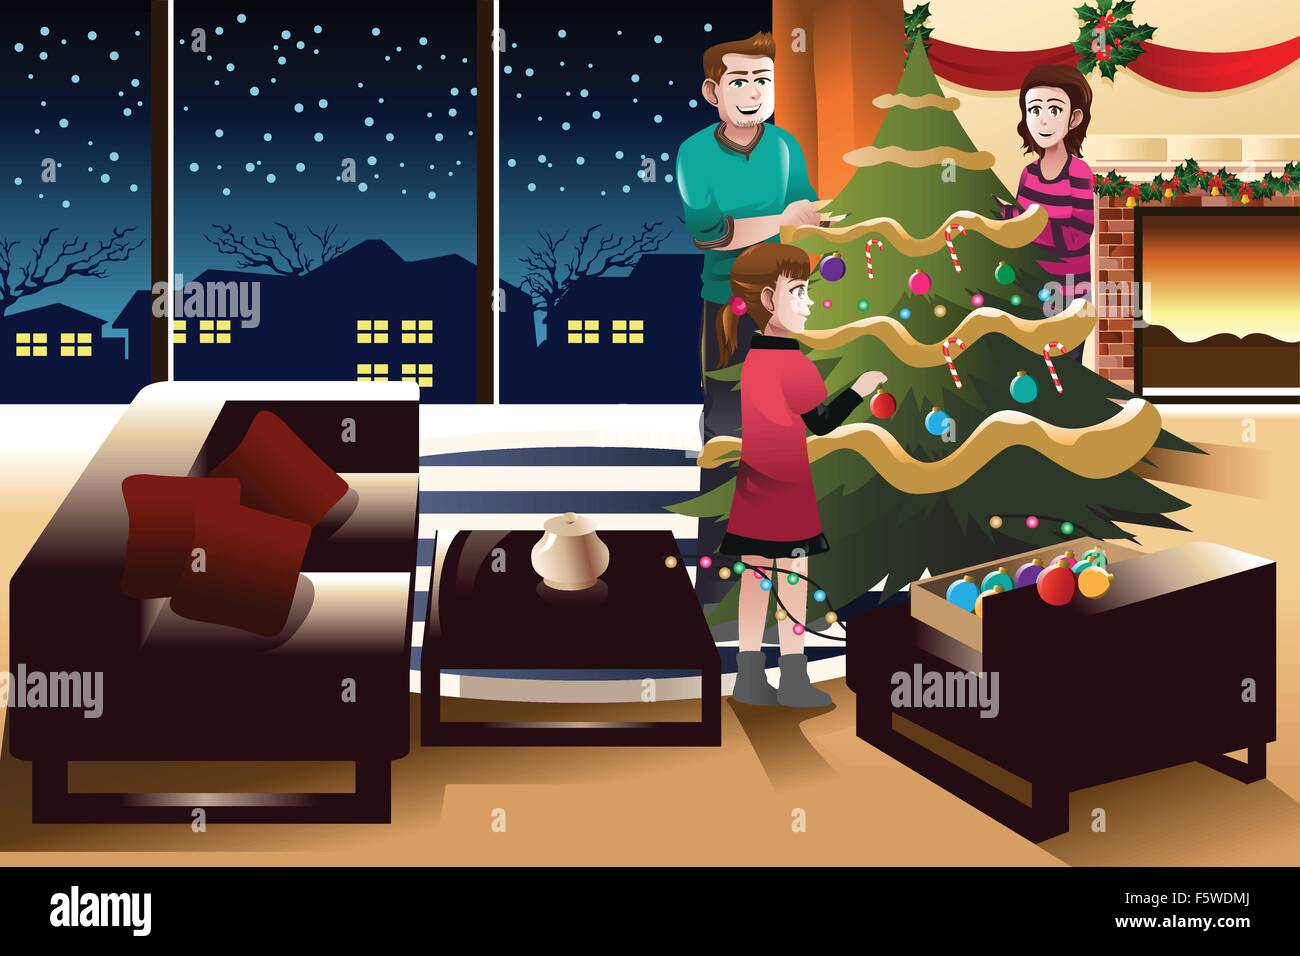 A vector illustration of happy family decorating Christmas tree together - Stock Vector